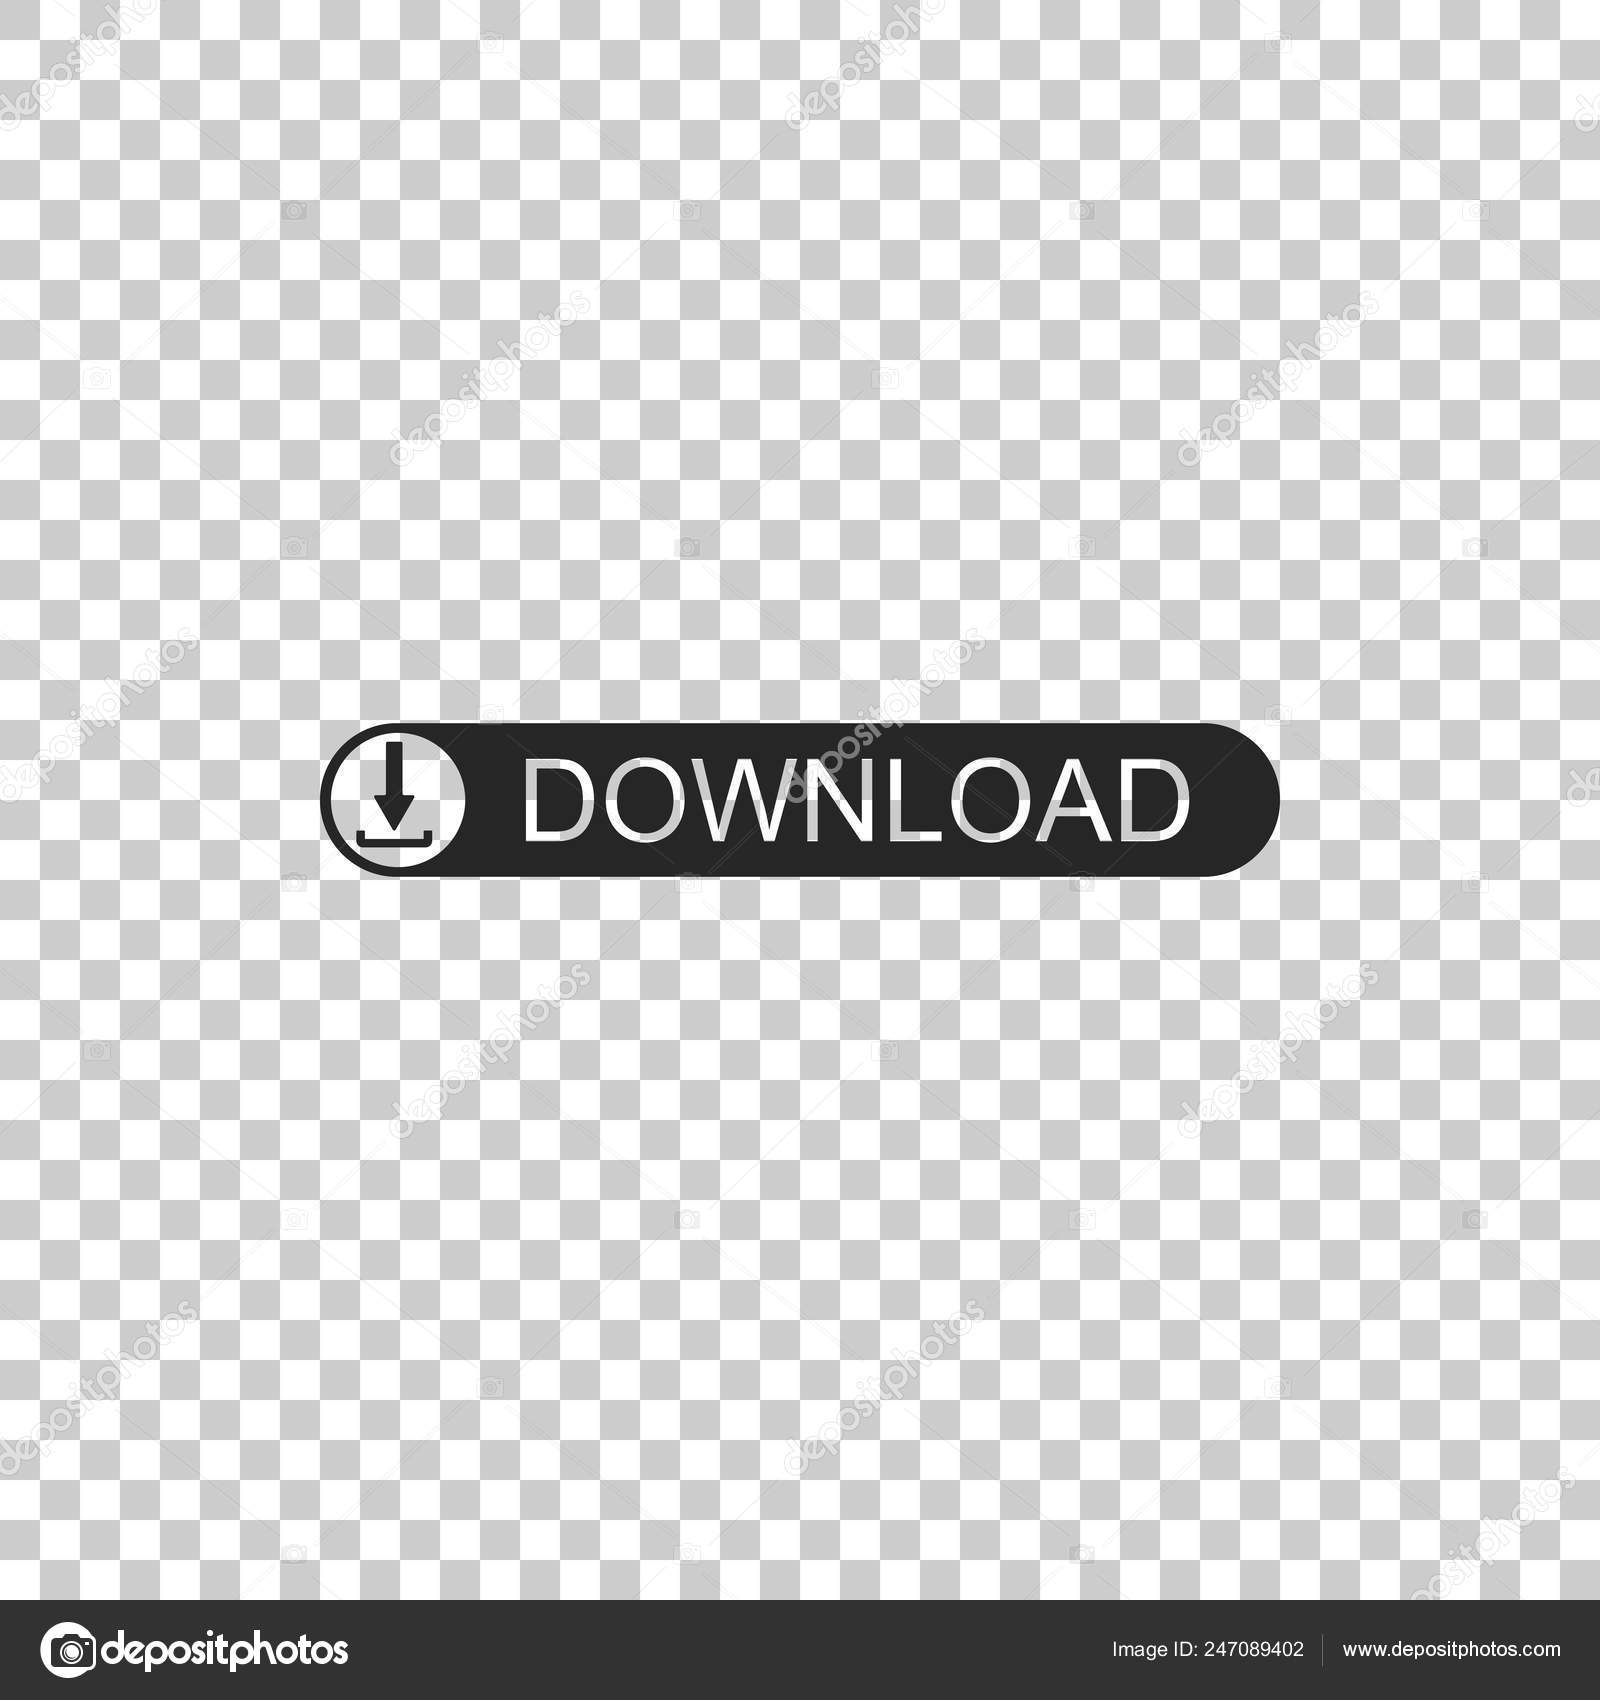 Download Button With Arrow Icon Isolated On Transparent Background